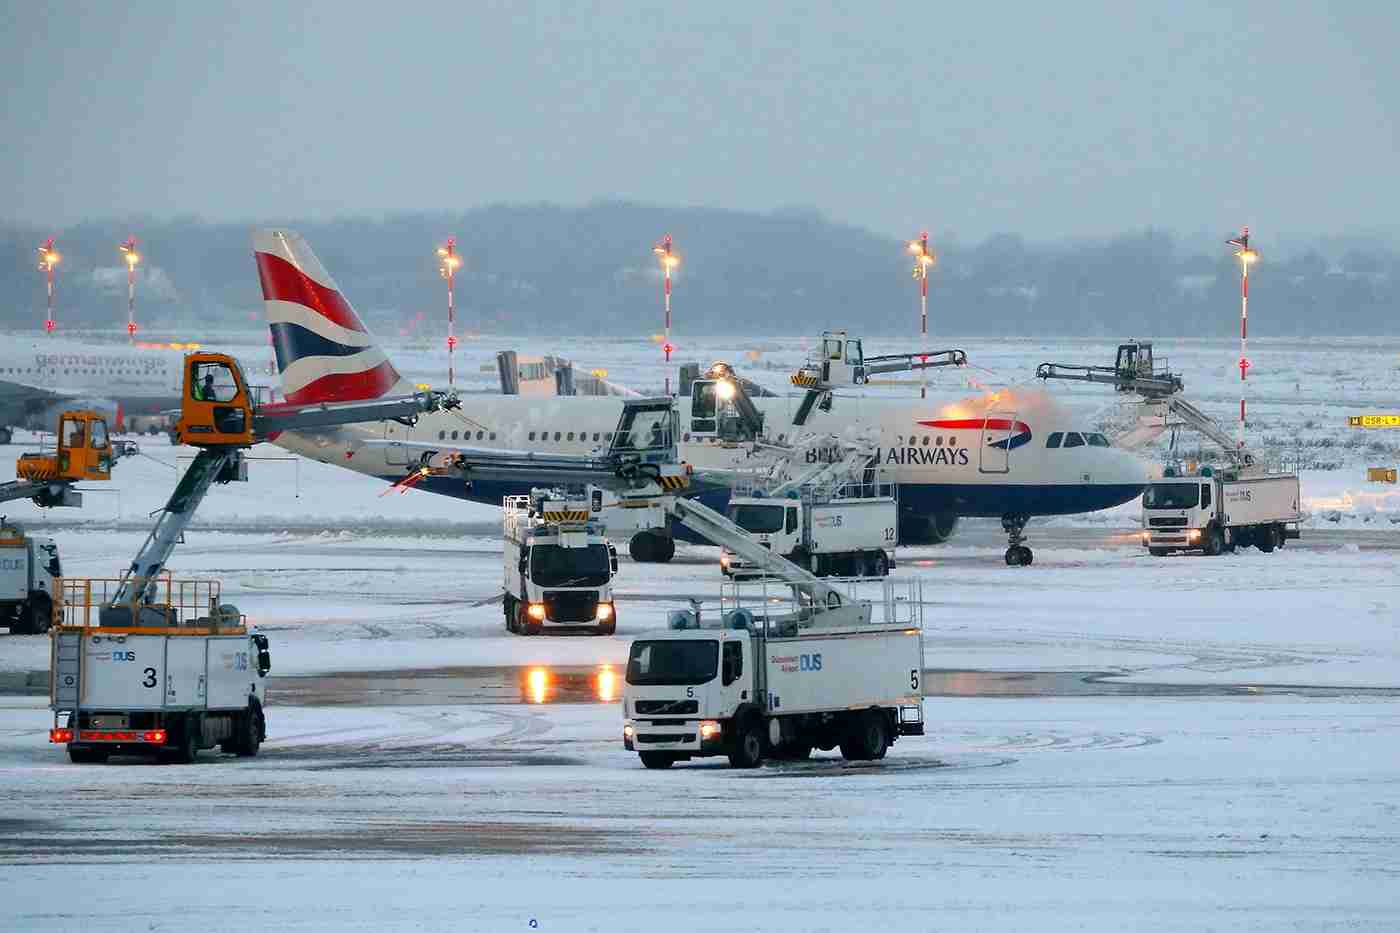 A British Airways Airbus A320 gets de-iced on the tarmac of the airport in Düsseldorf, Germany, on December 10, 2017. Image by David Young / AFP / Getty Images